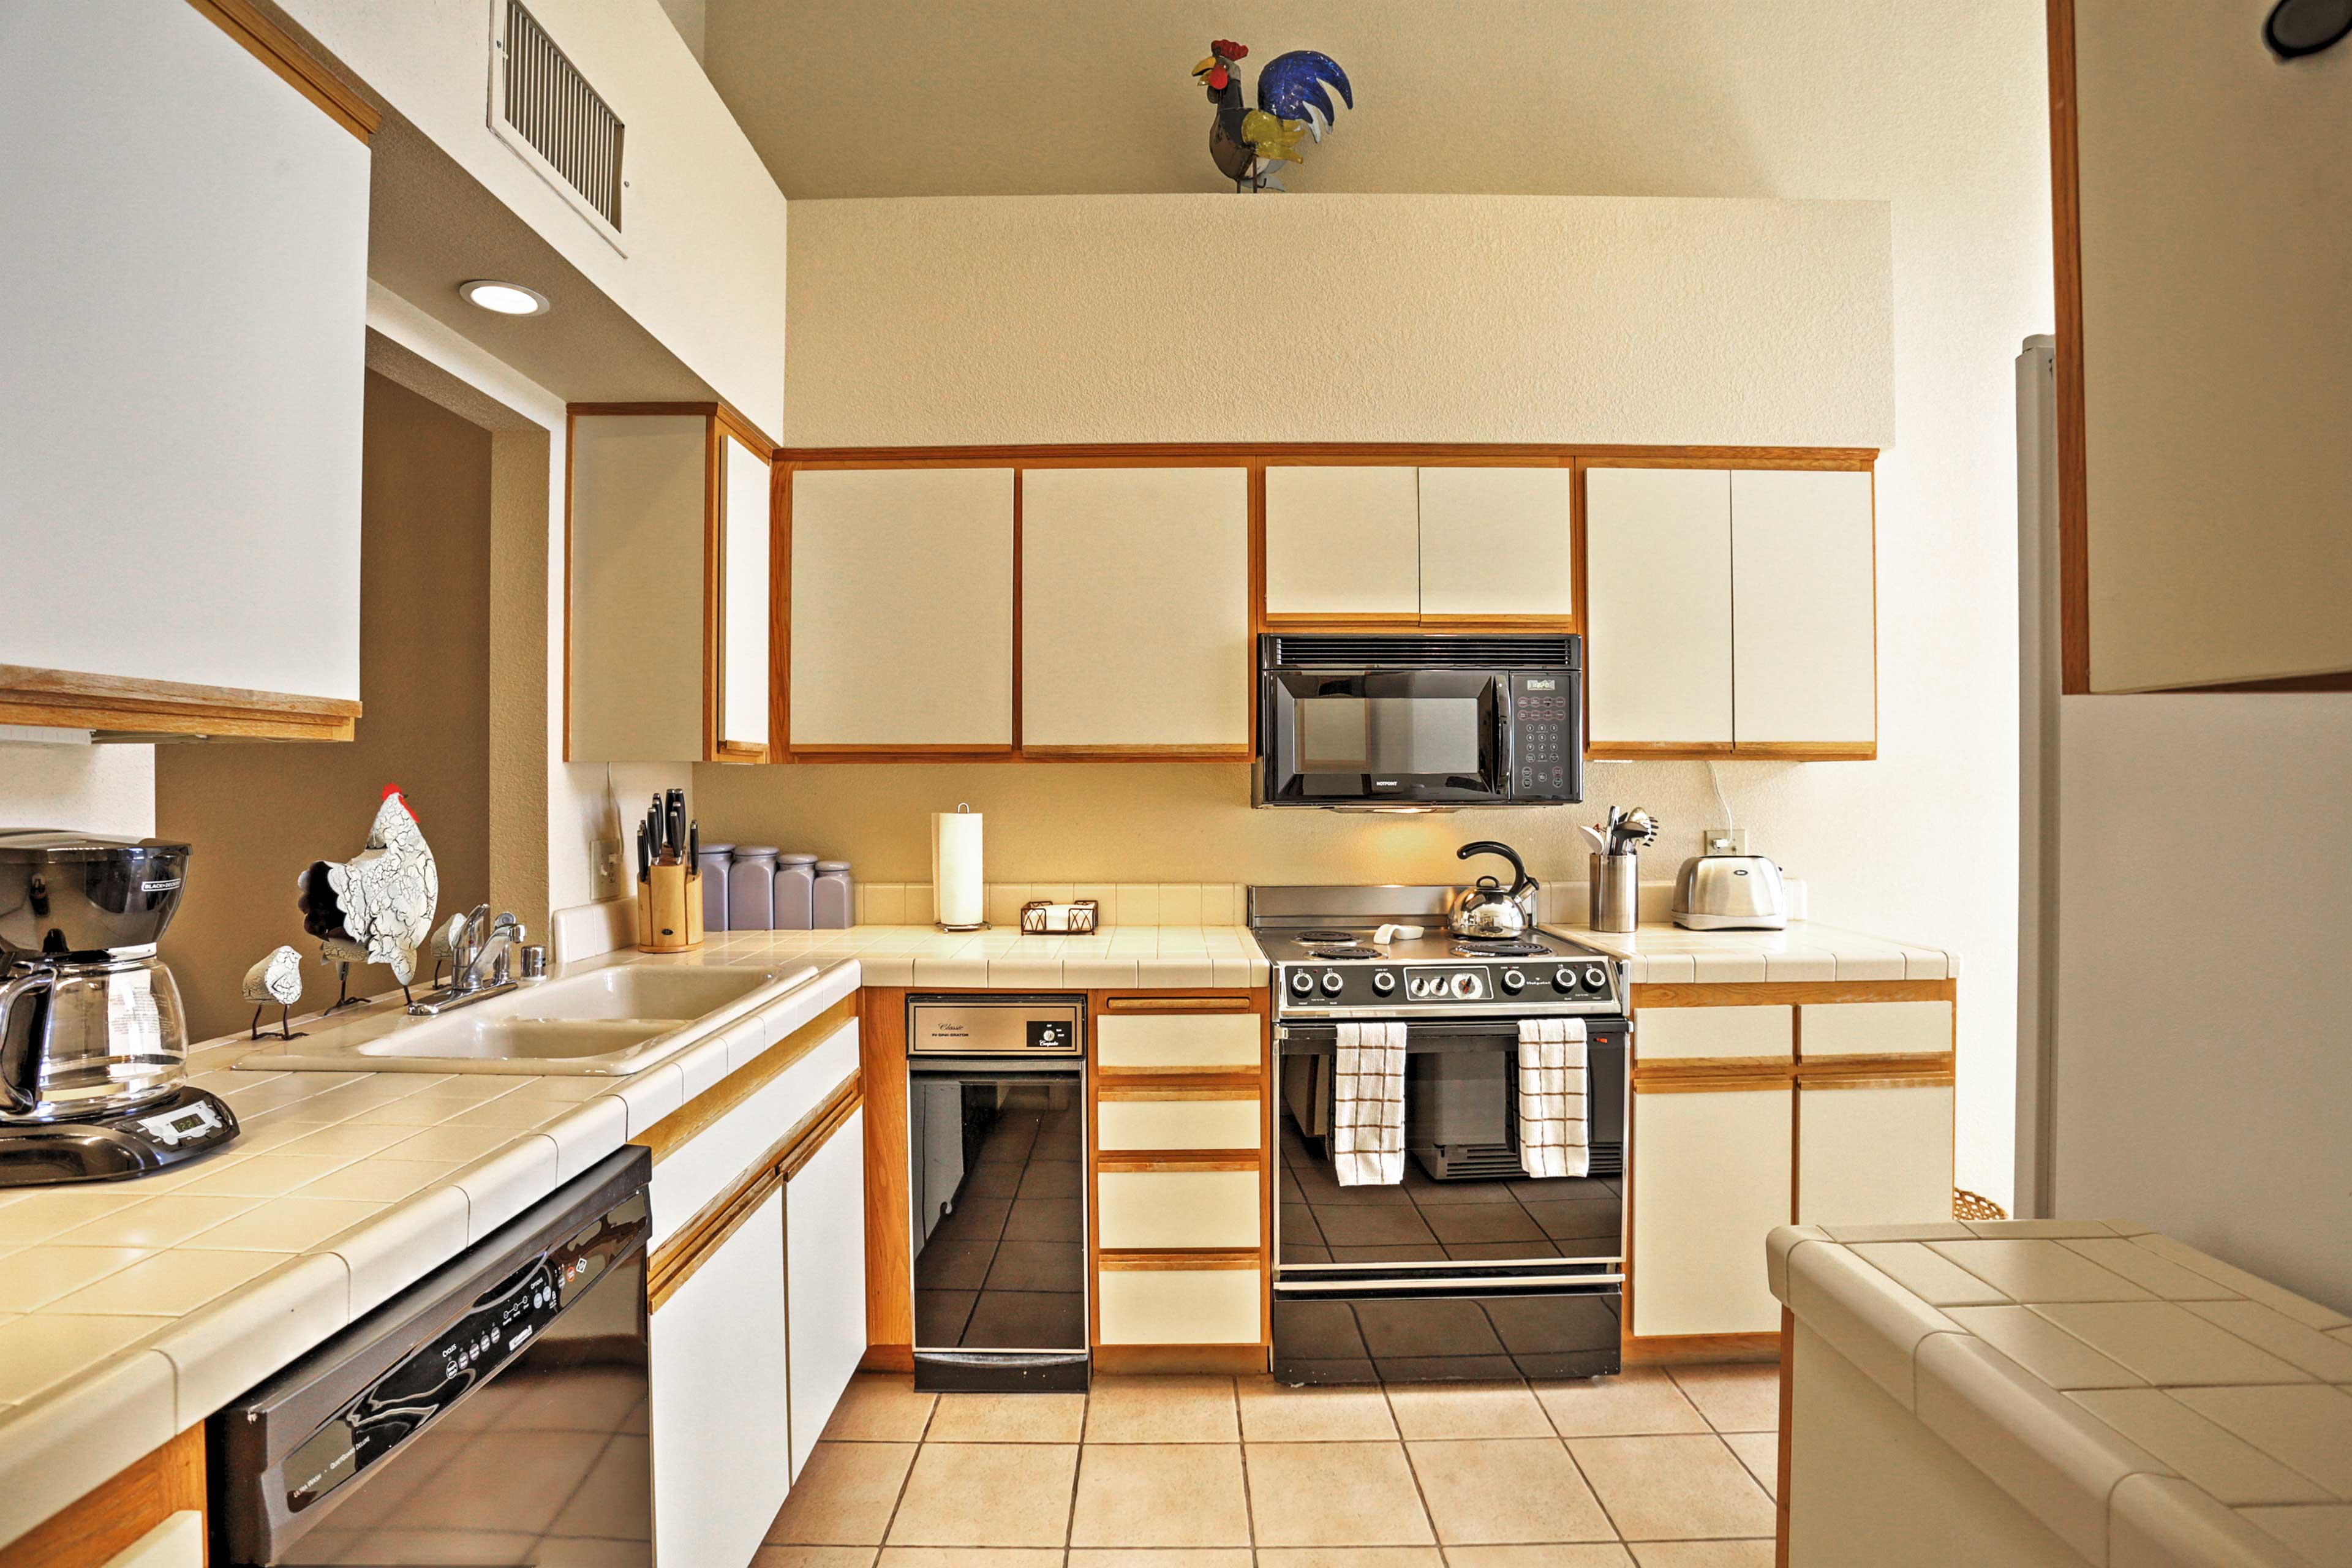 The fully equipped kitchen is perfect for preparing tasty treats.